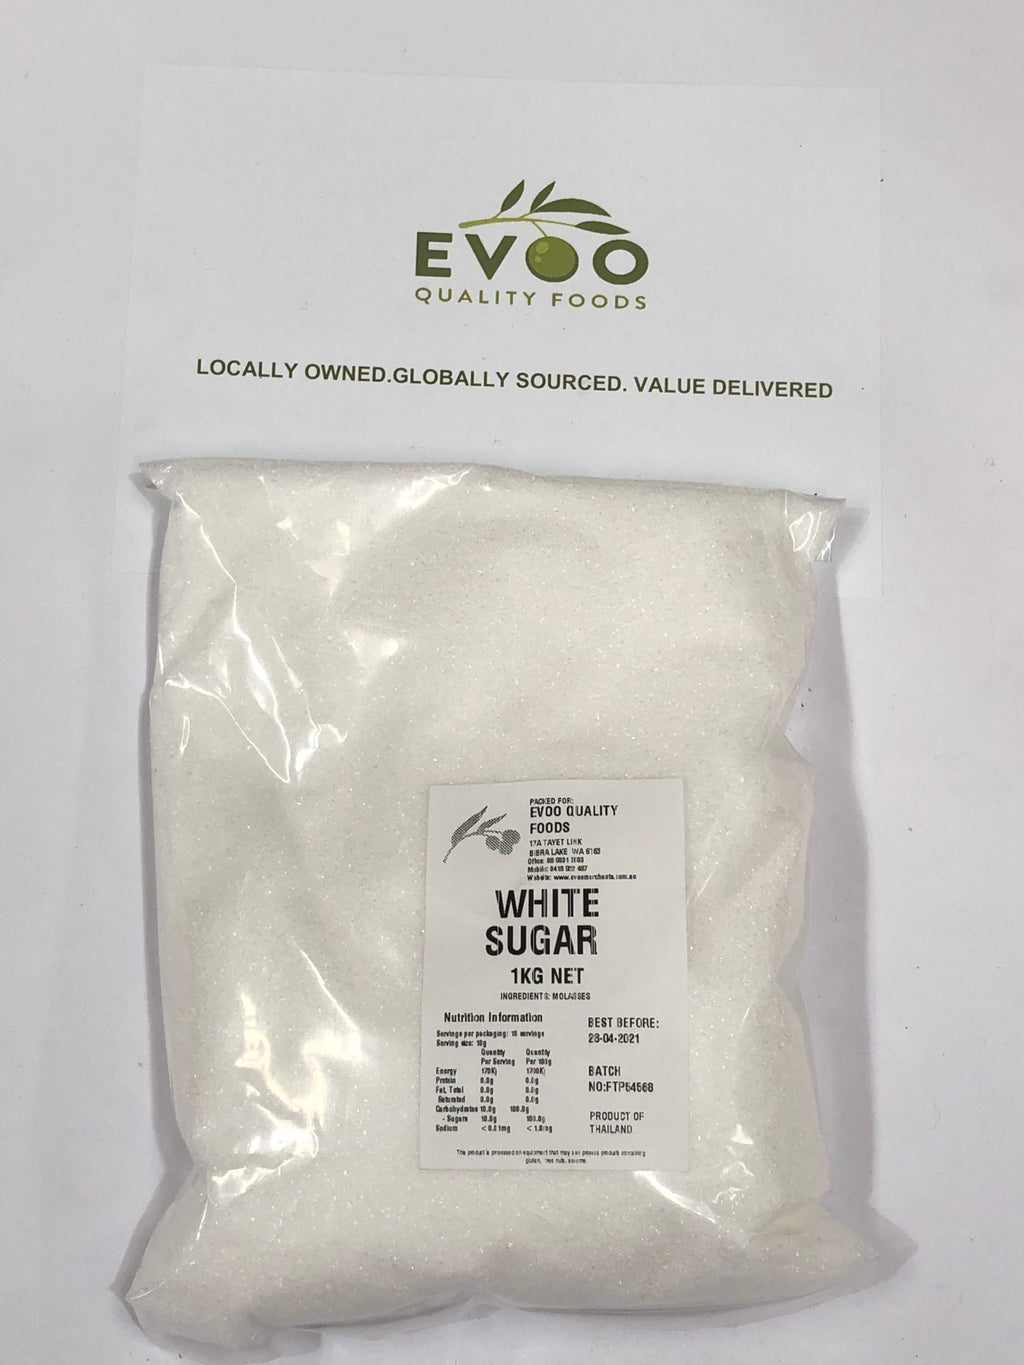 White Sugar 1kg Bag  EVOO QF